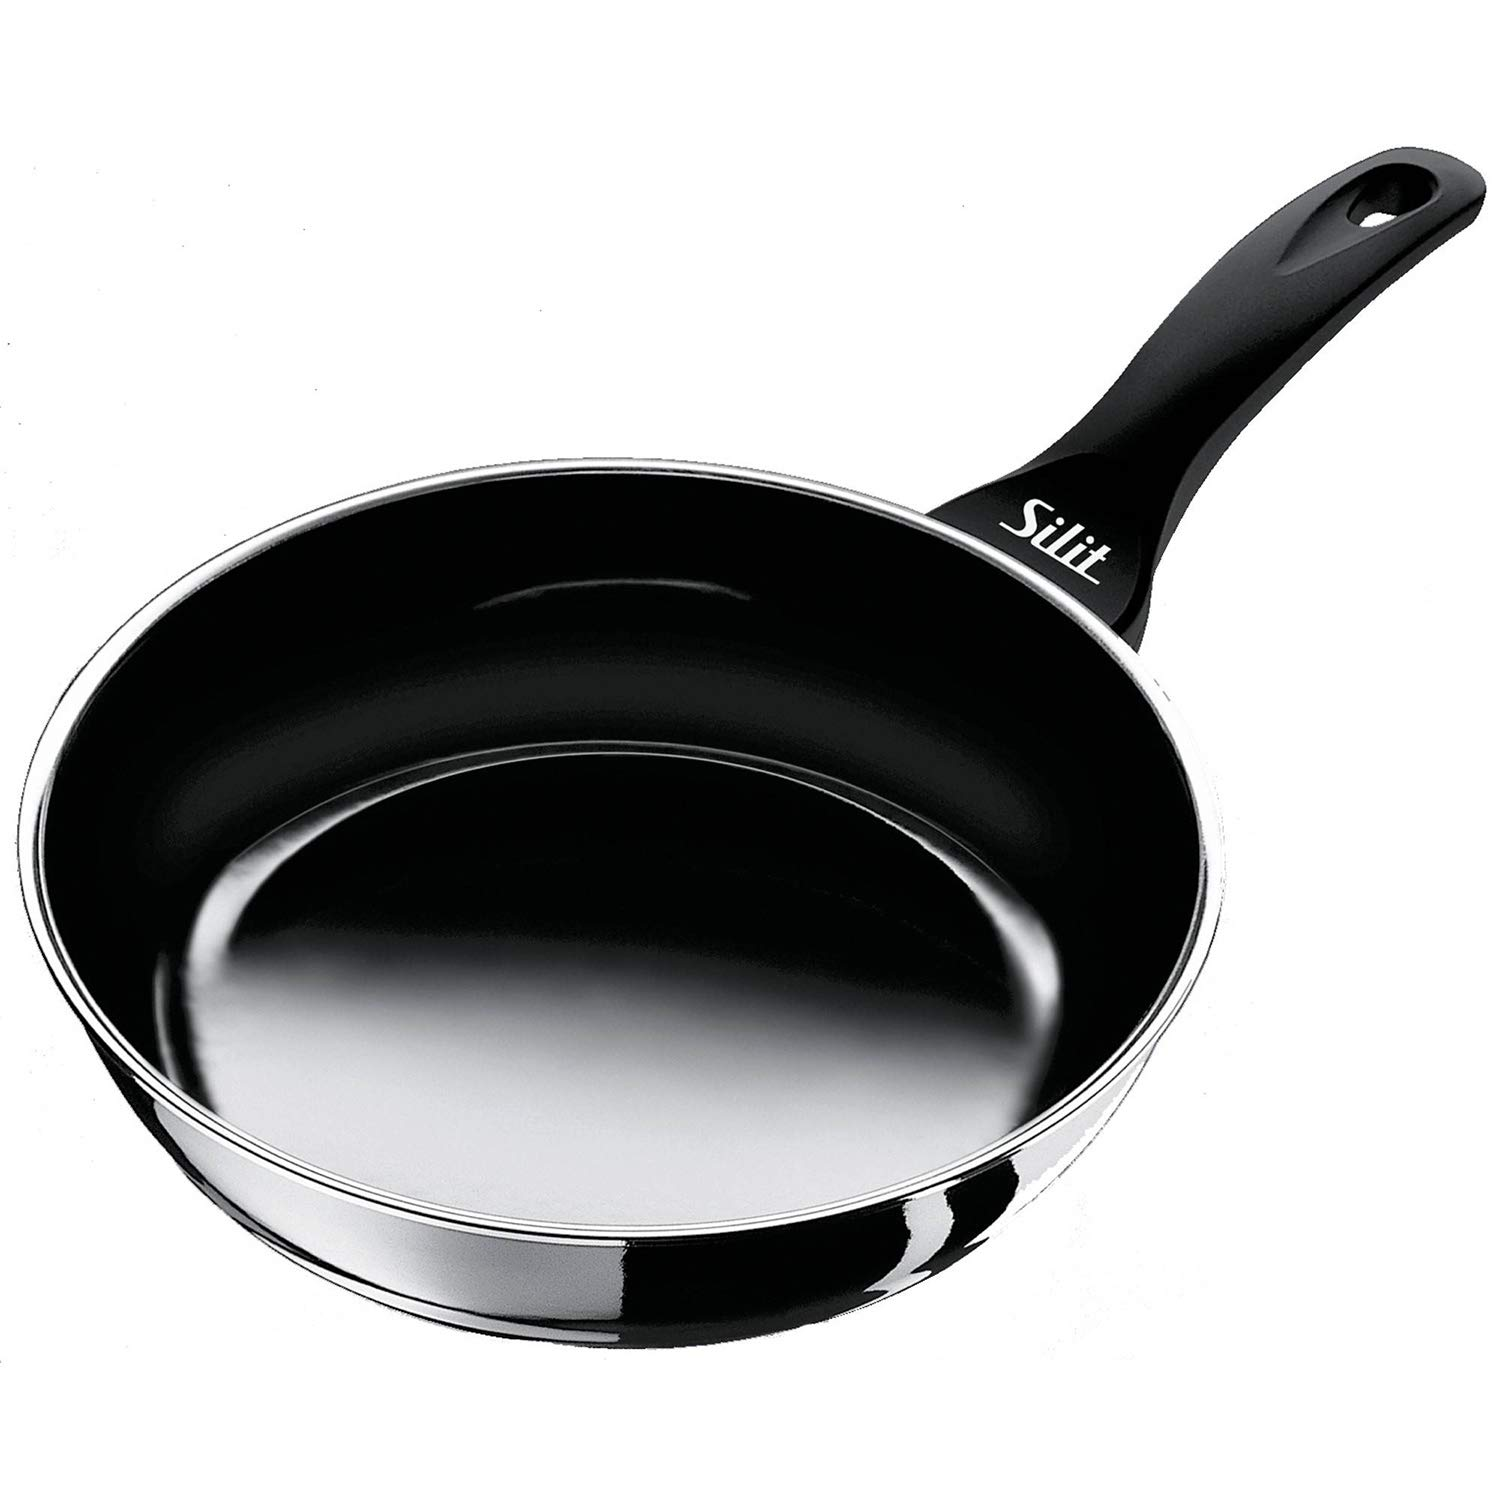 Silit 2110181811 Professional Frying Pan, Medium, Black